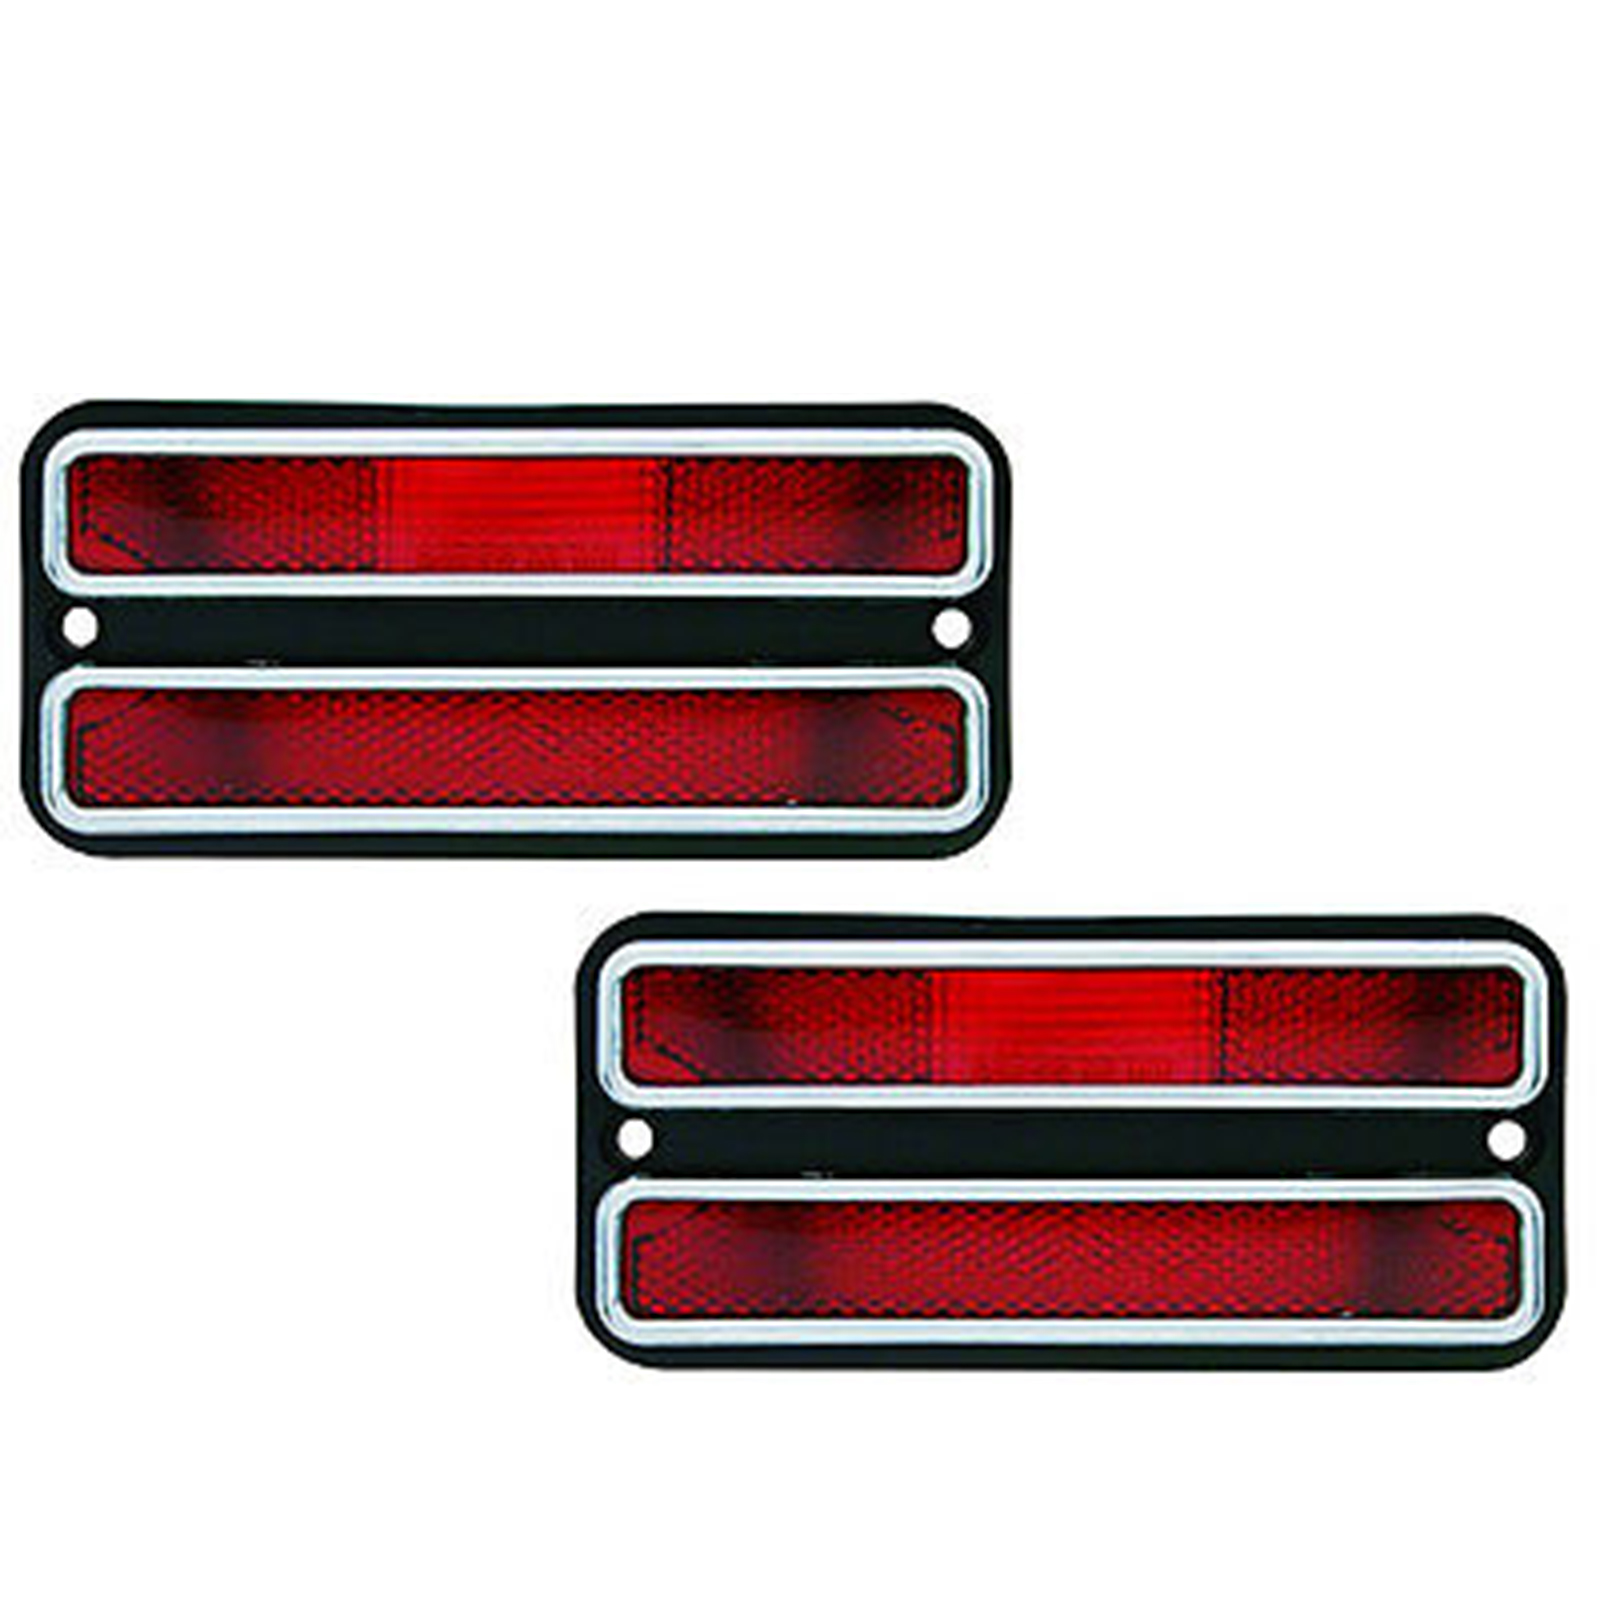 1968-1972 Chevy Truck Pickup Rear Side Marker Lamp Lens W//Trim RED PAIR